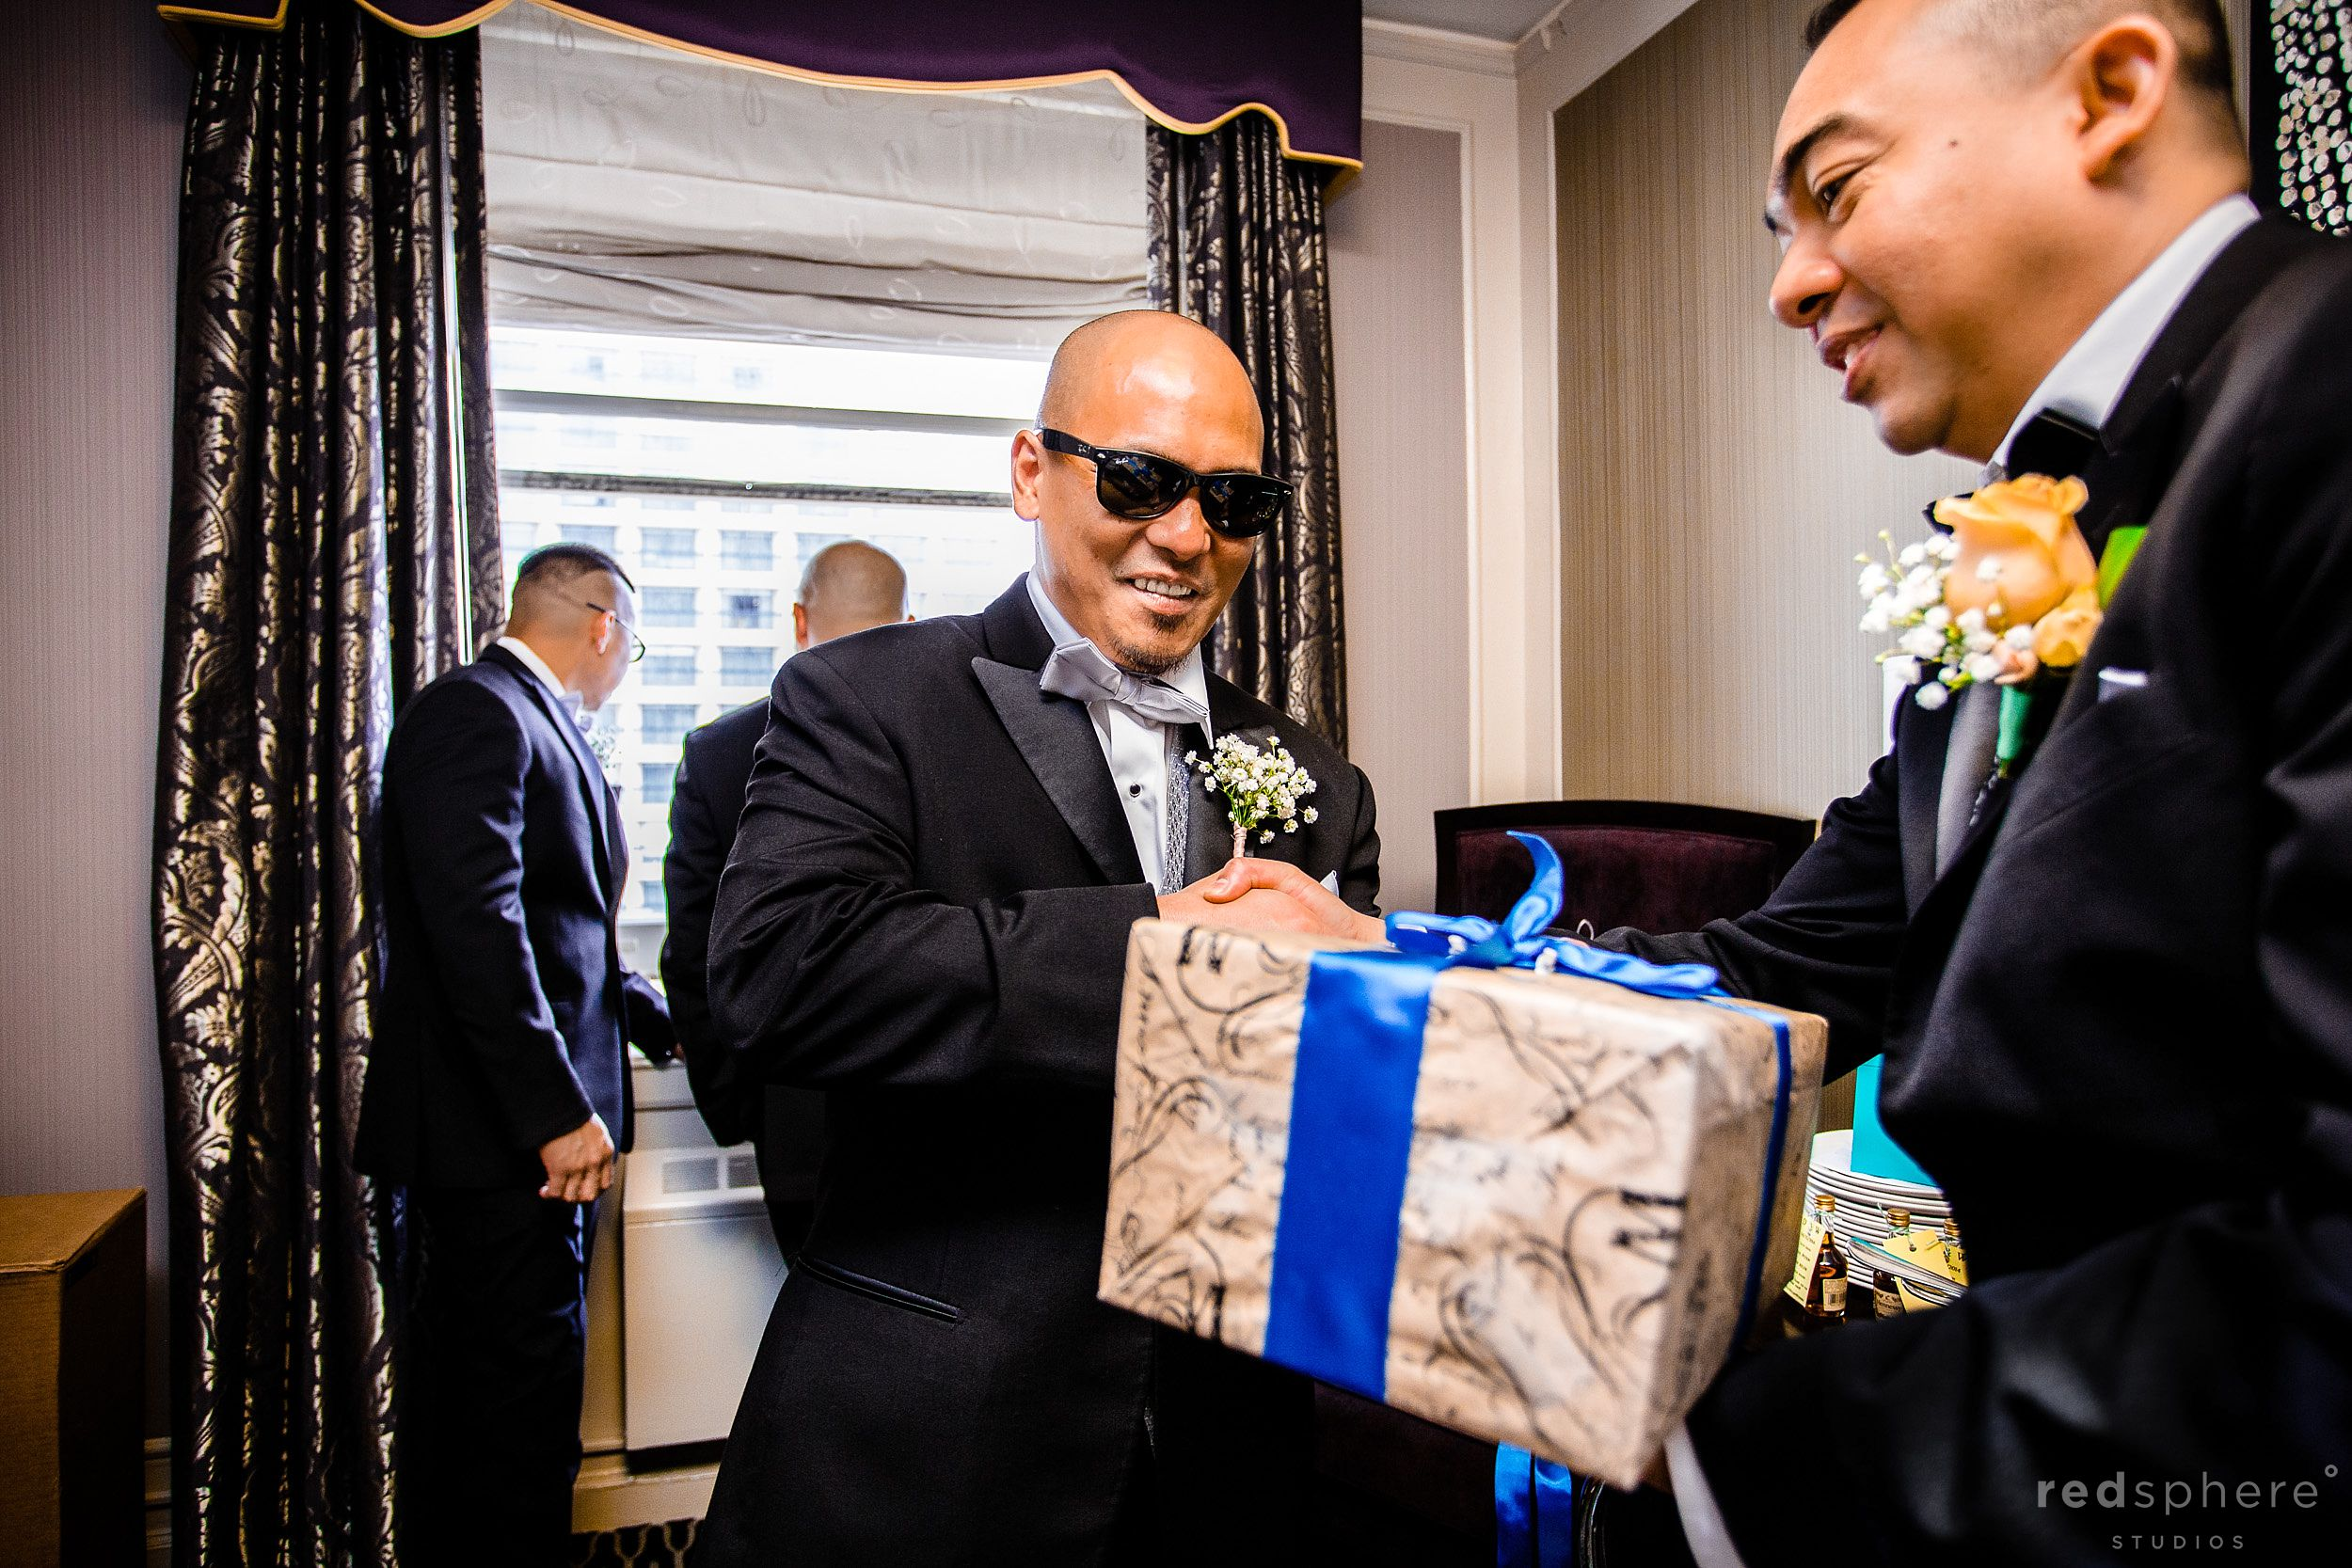 Groomsmen Giving Gifts to the Man